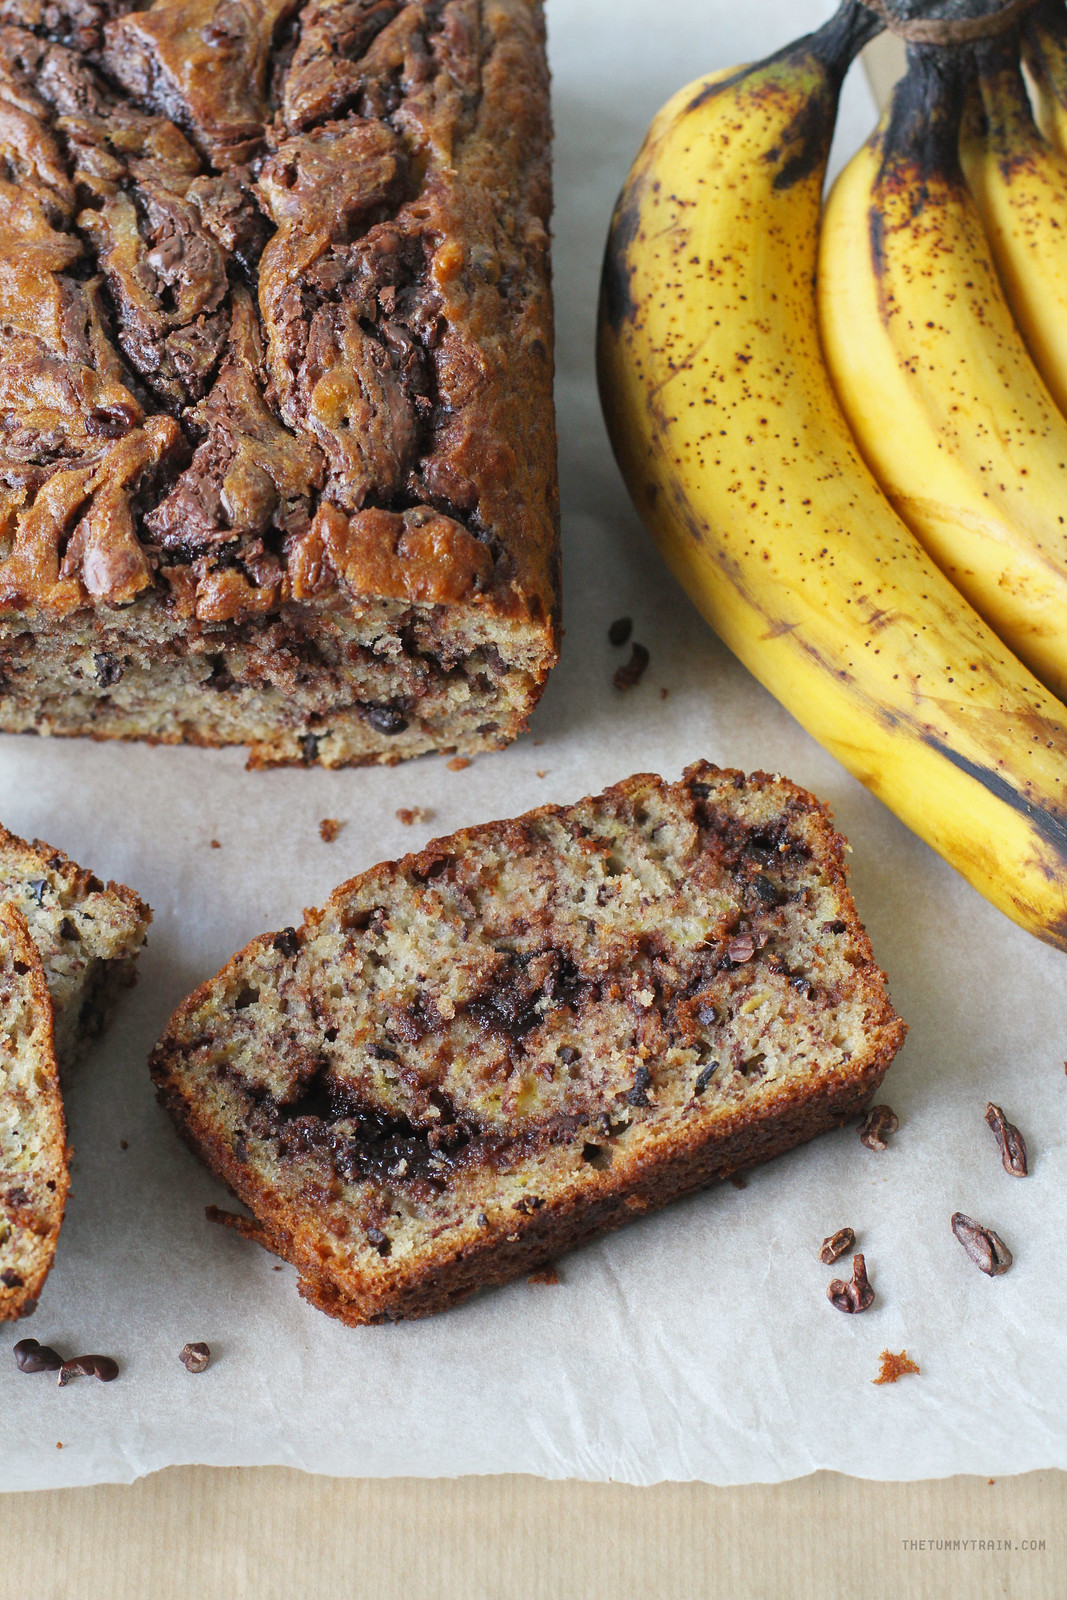 32119817885 ebfe4d78a5 h - Double trouble with this particular variation of a Chocolate Banana Bread Recipe